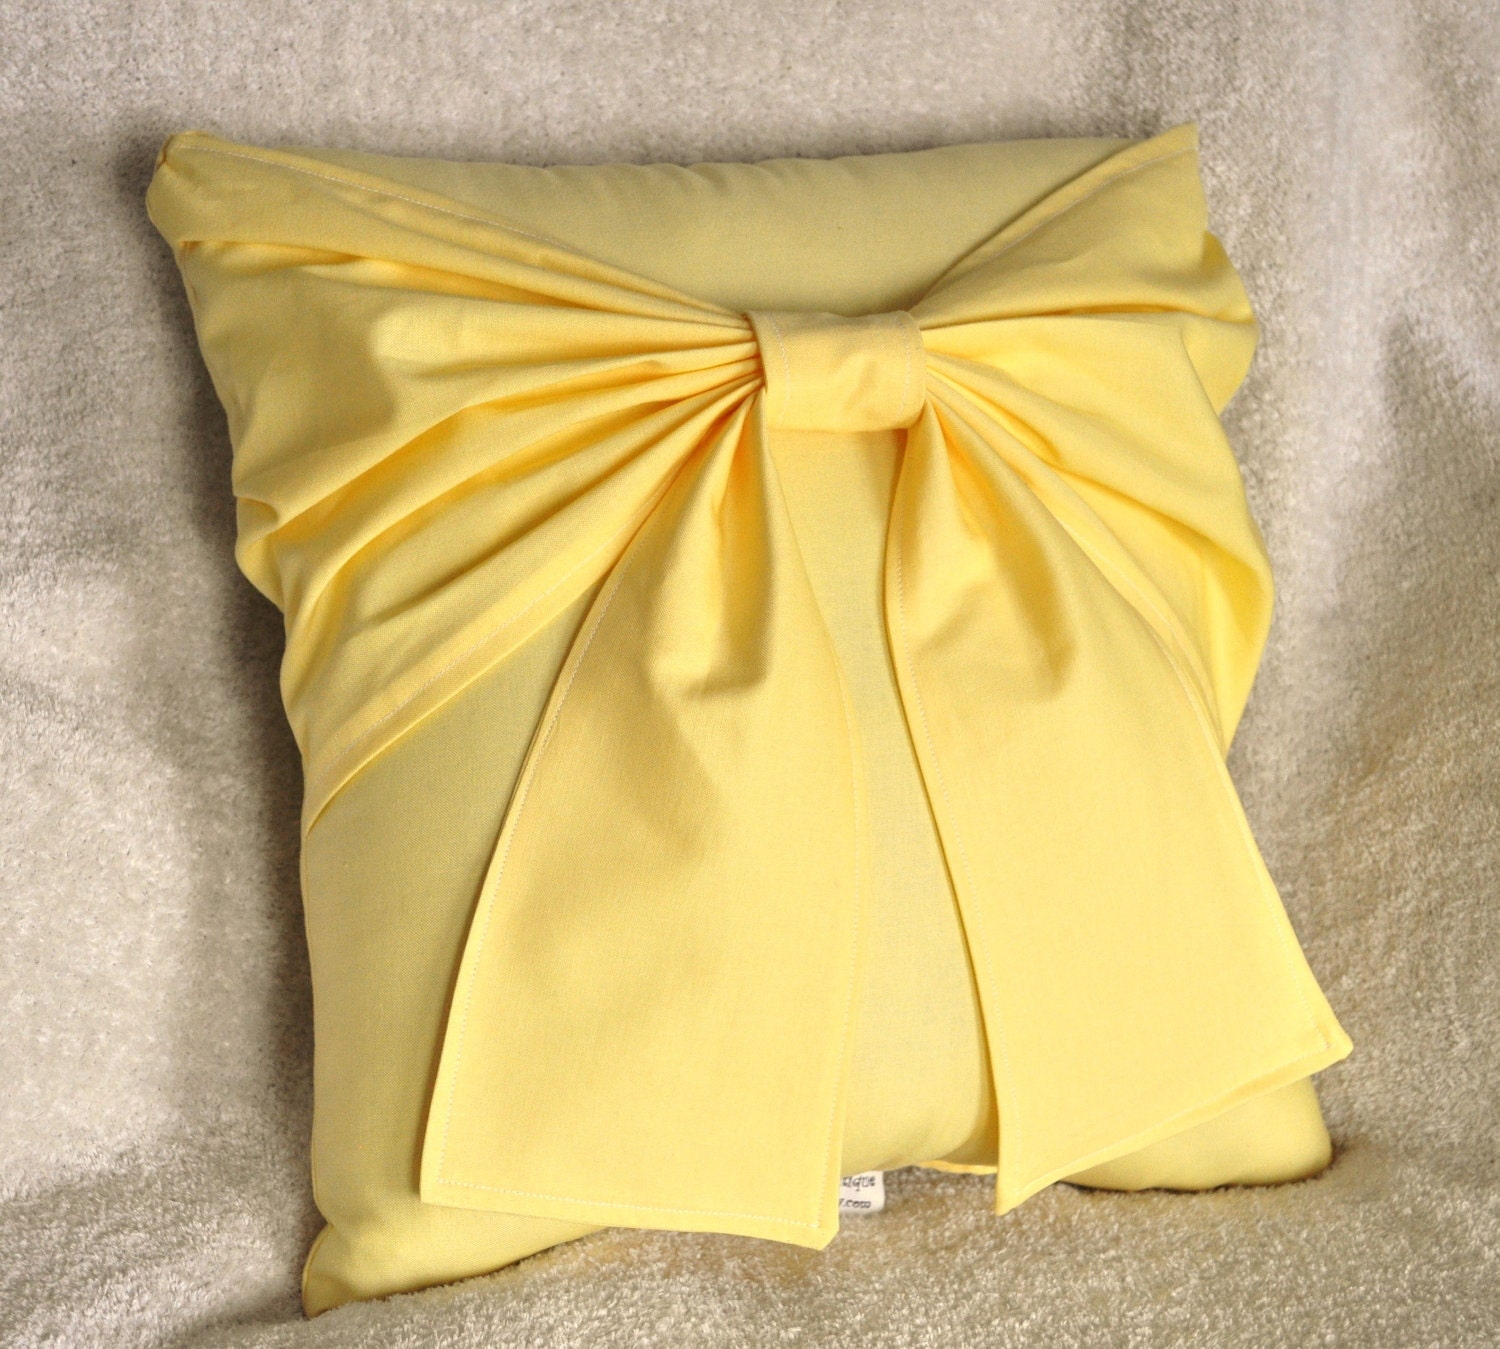 Throw Pillow Yellow : Yellow Bow Pillow Decorative Pillow